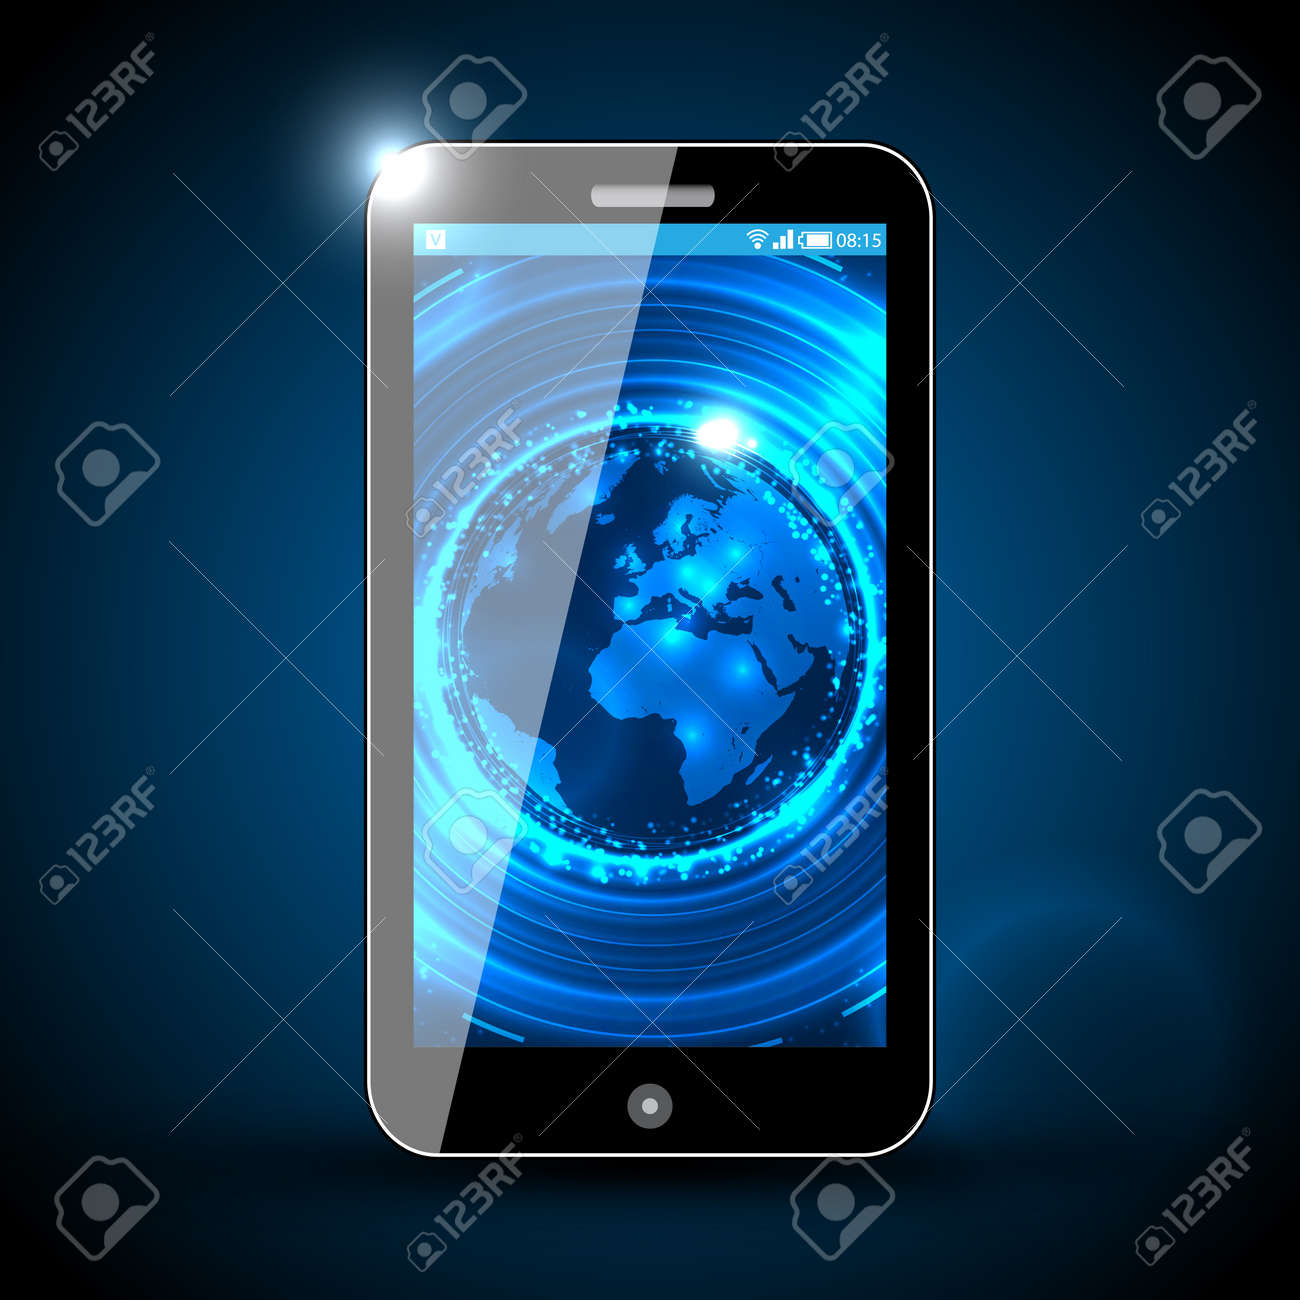 Mobile Phone - Traveling  Design Stock Vector - 14753306